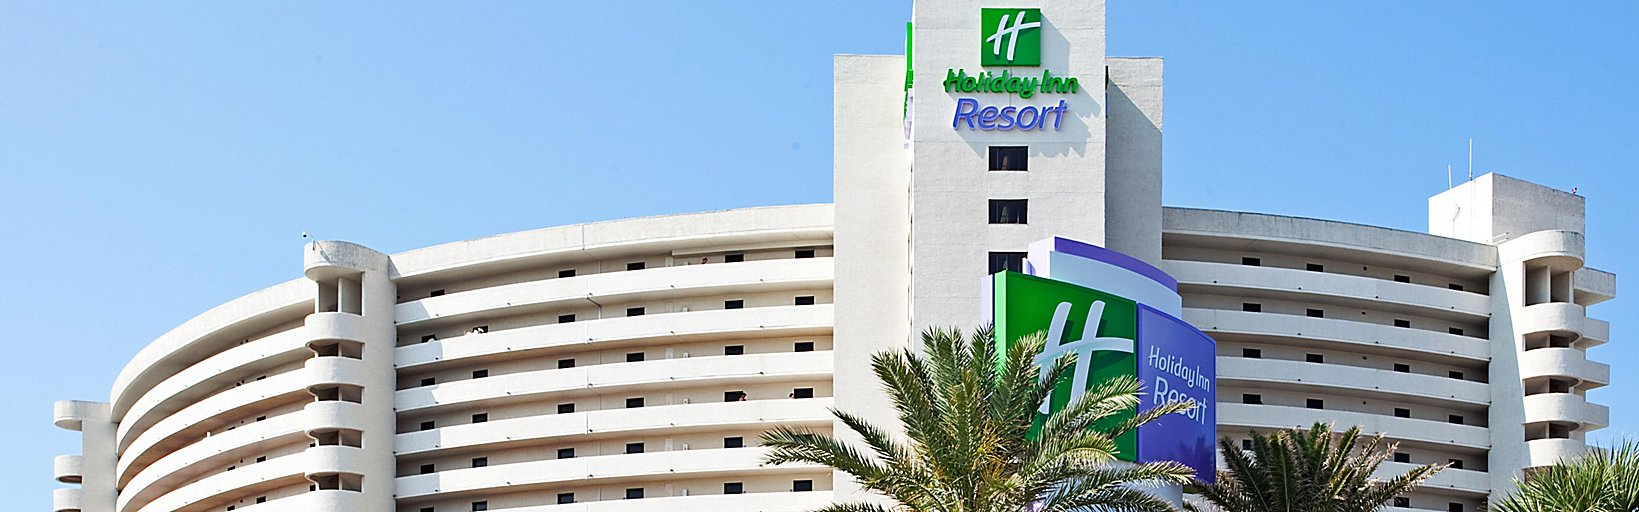 Panama City Beach Hotels >> Holiday Inn Resort Panama City Beach Hotel By Ihg